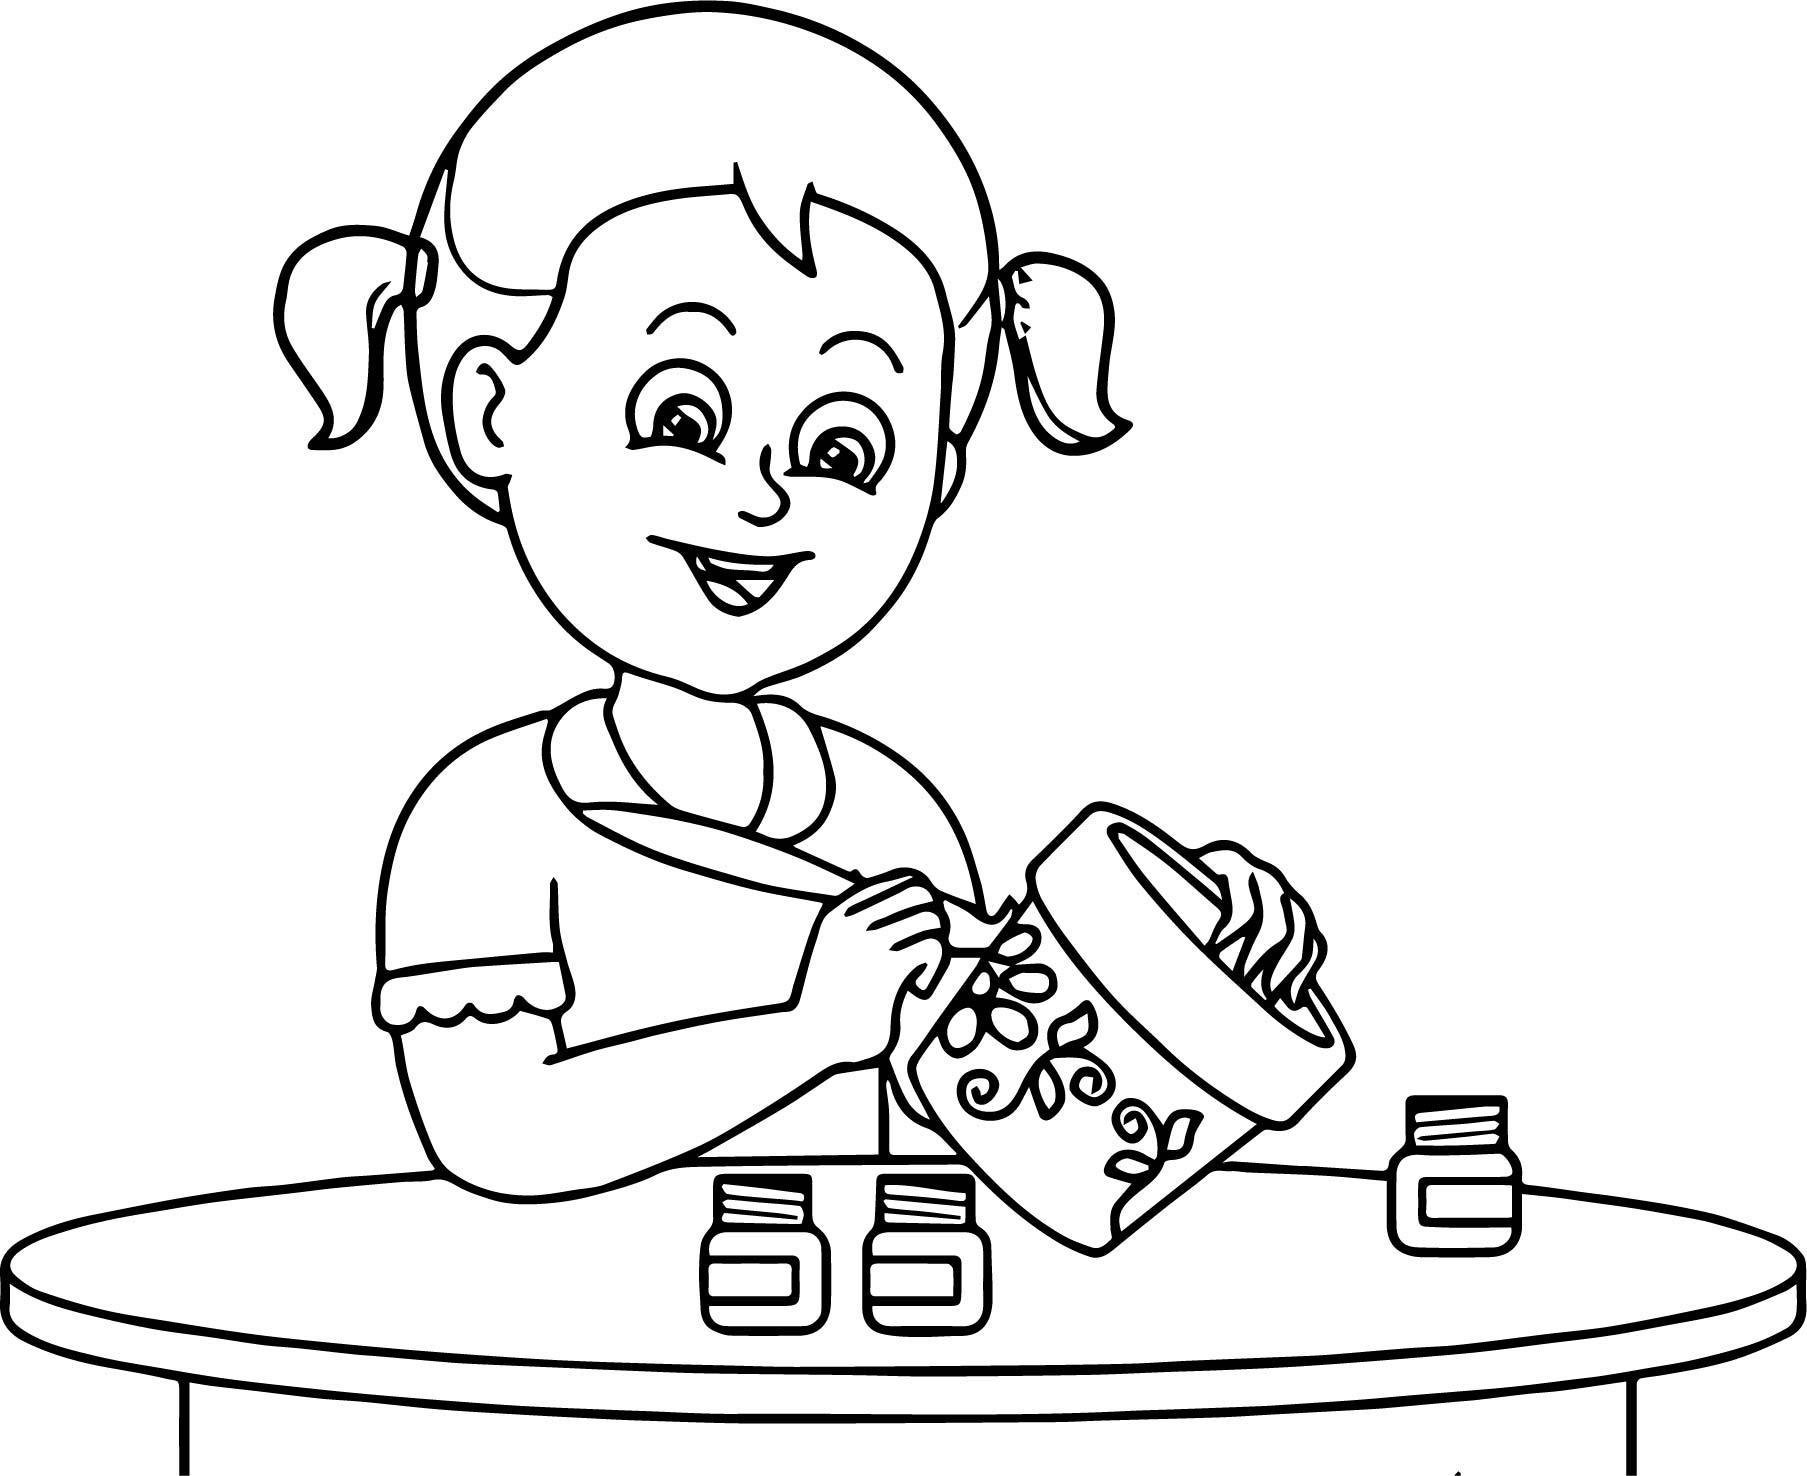 Bucket Painter Girl Coloring Page